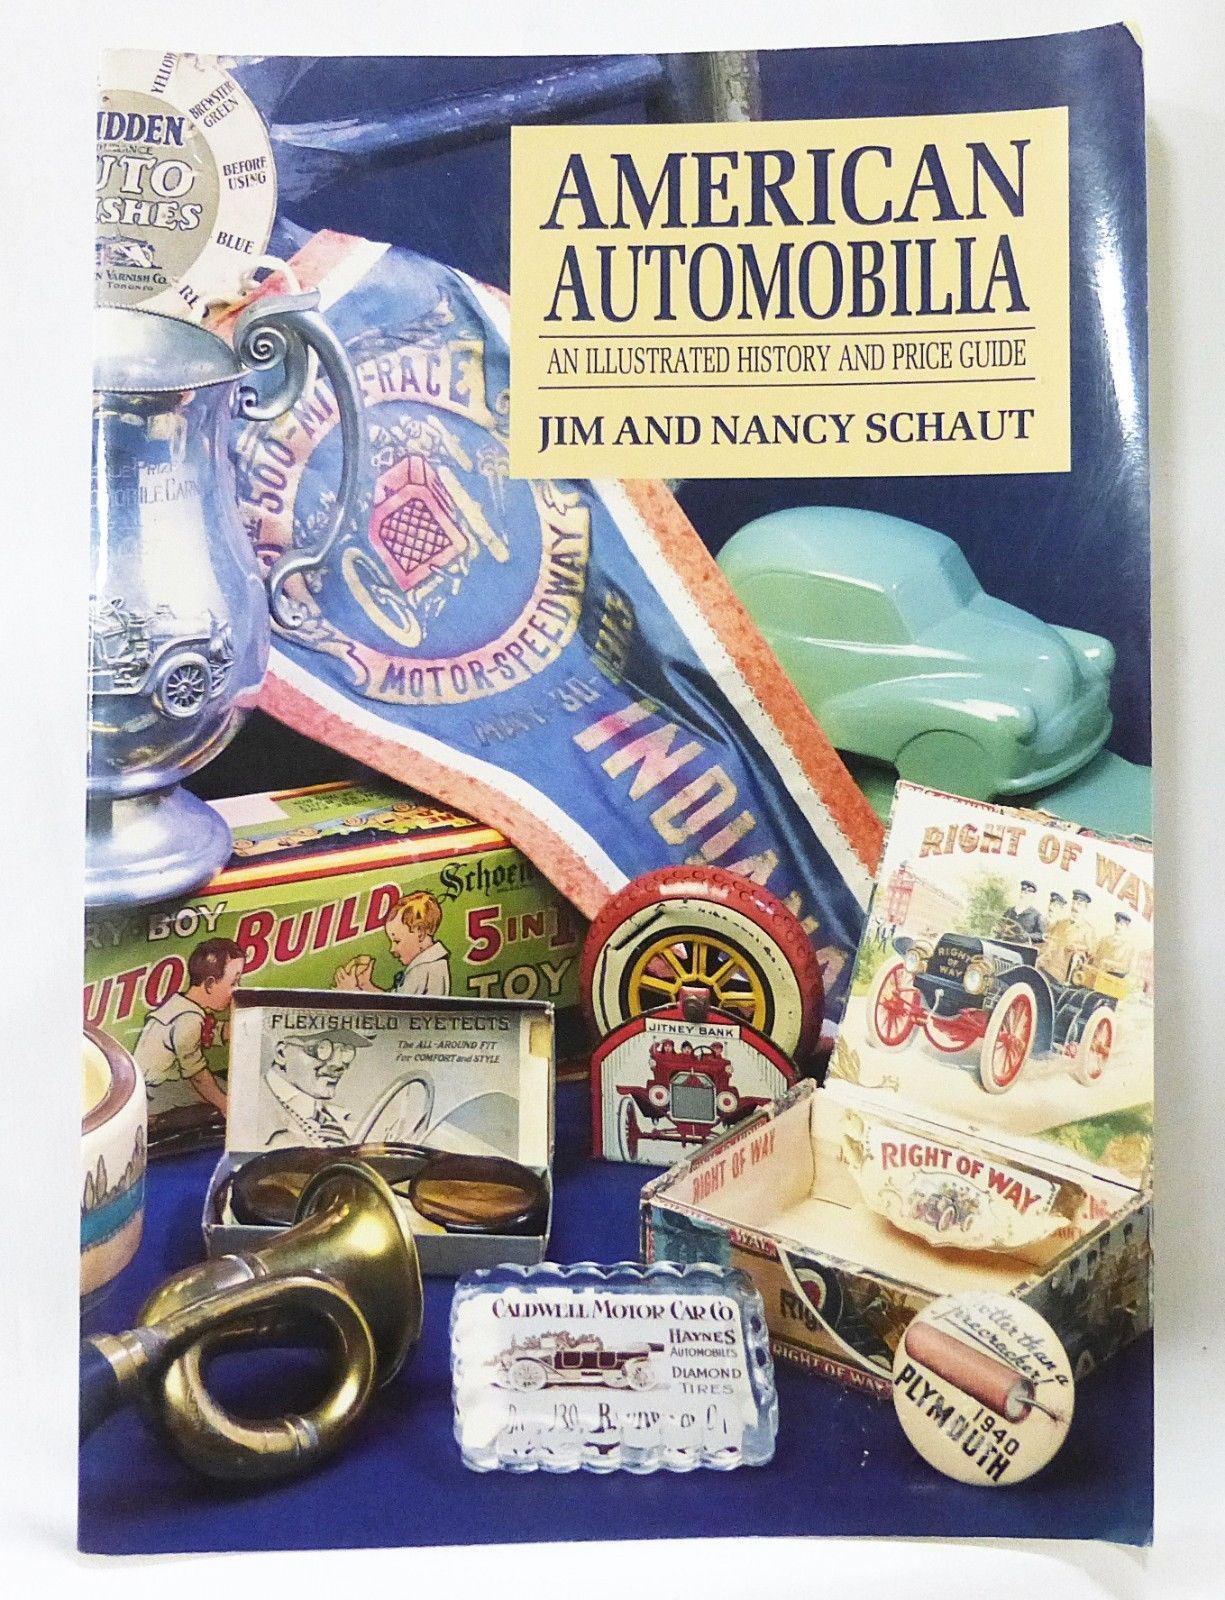 Primary image for American automobilia an illustrated history and price guide paperback 1994